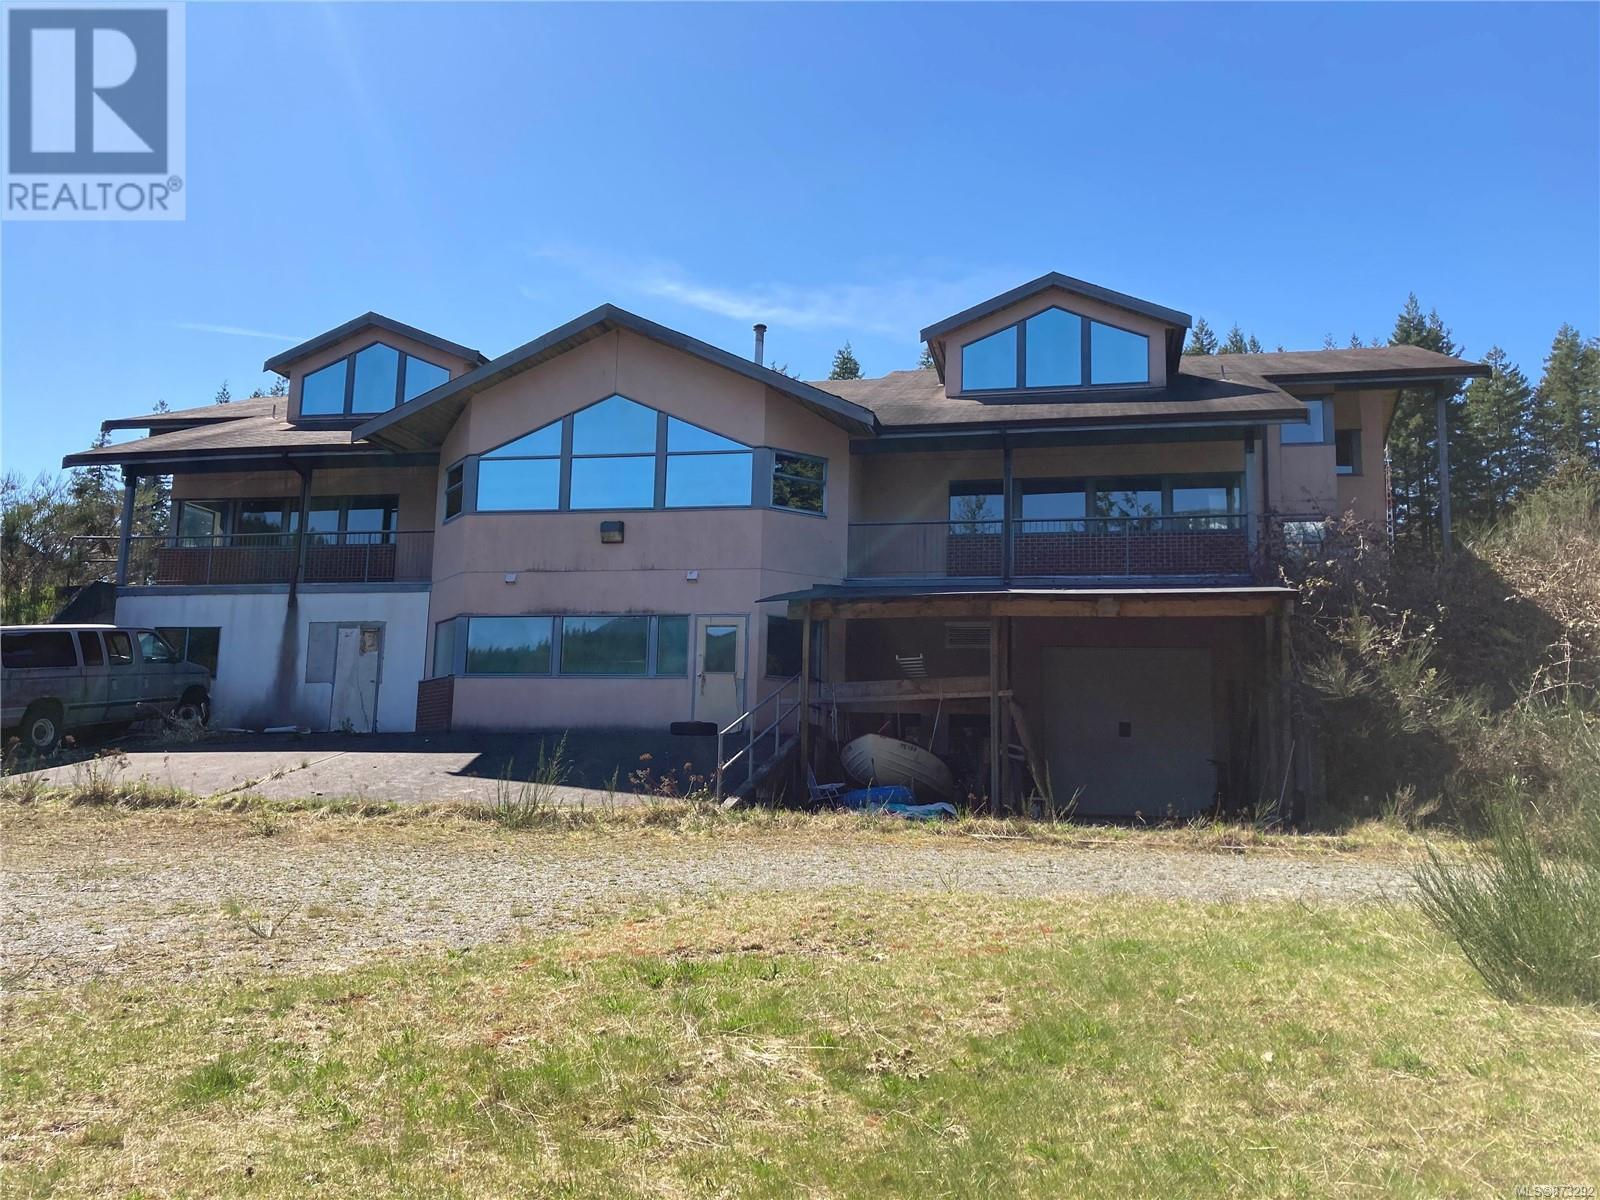 2080 Lakeview Rd, Campbell River, British Columbia  V9W 4Z9 - Photo 2 - 873292